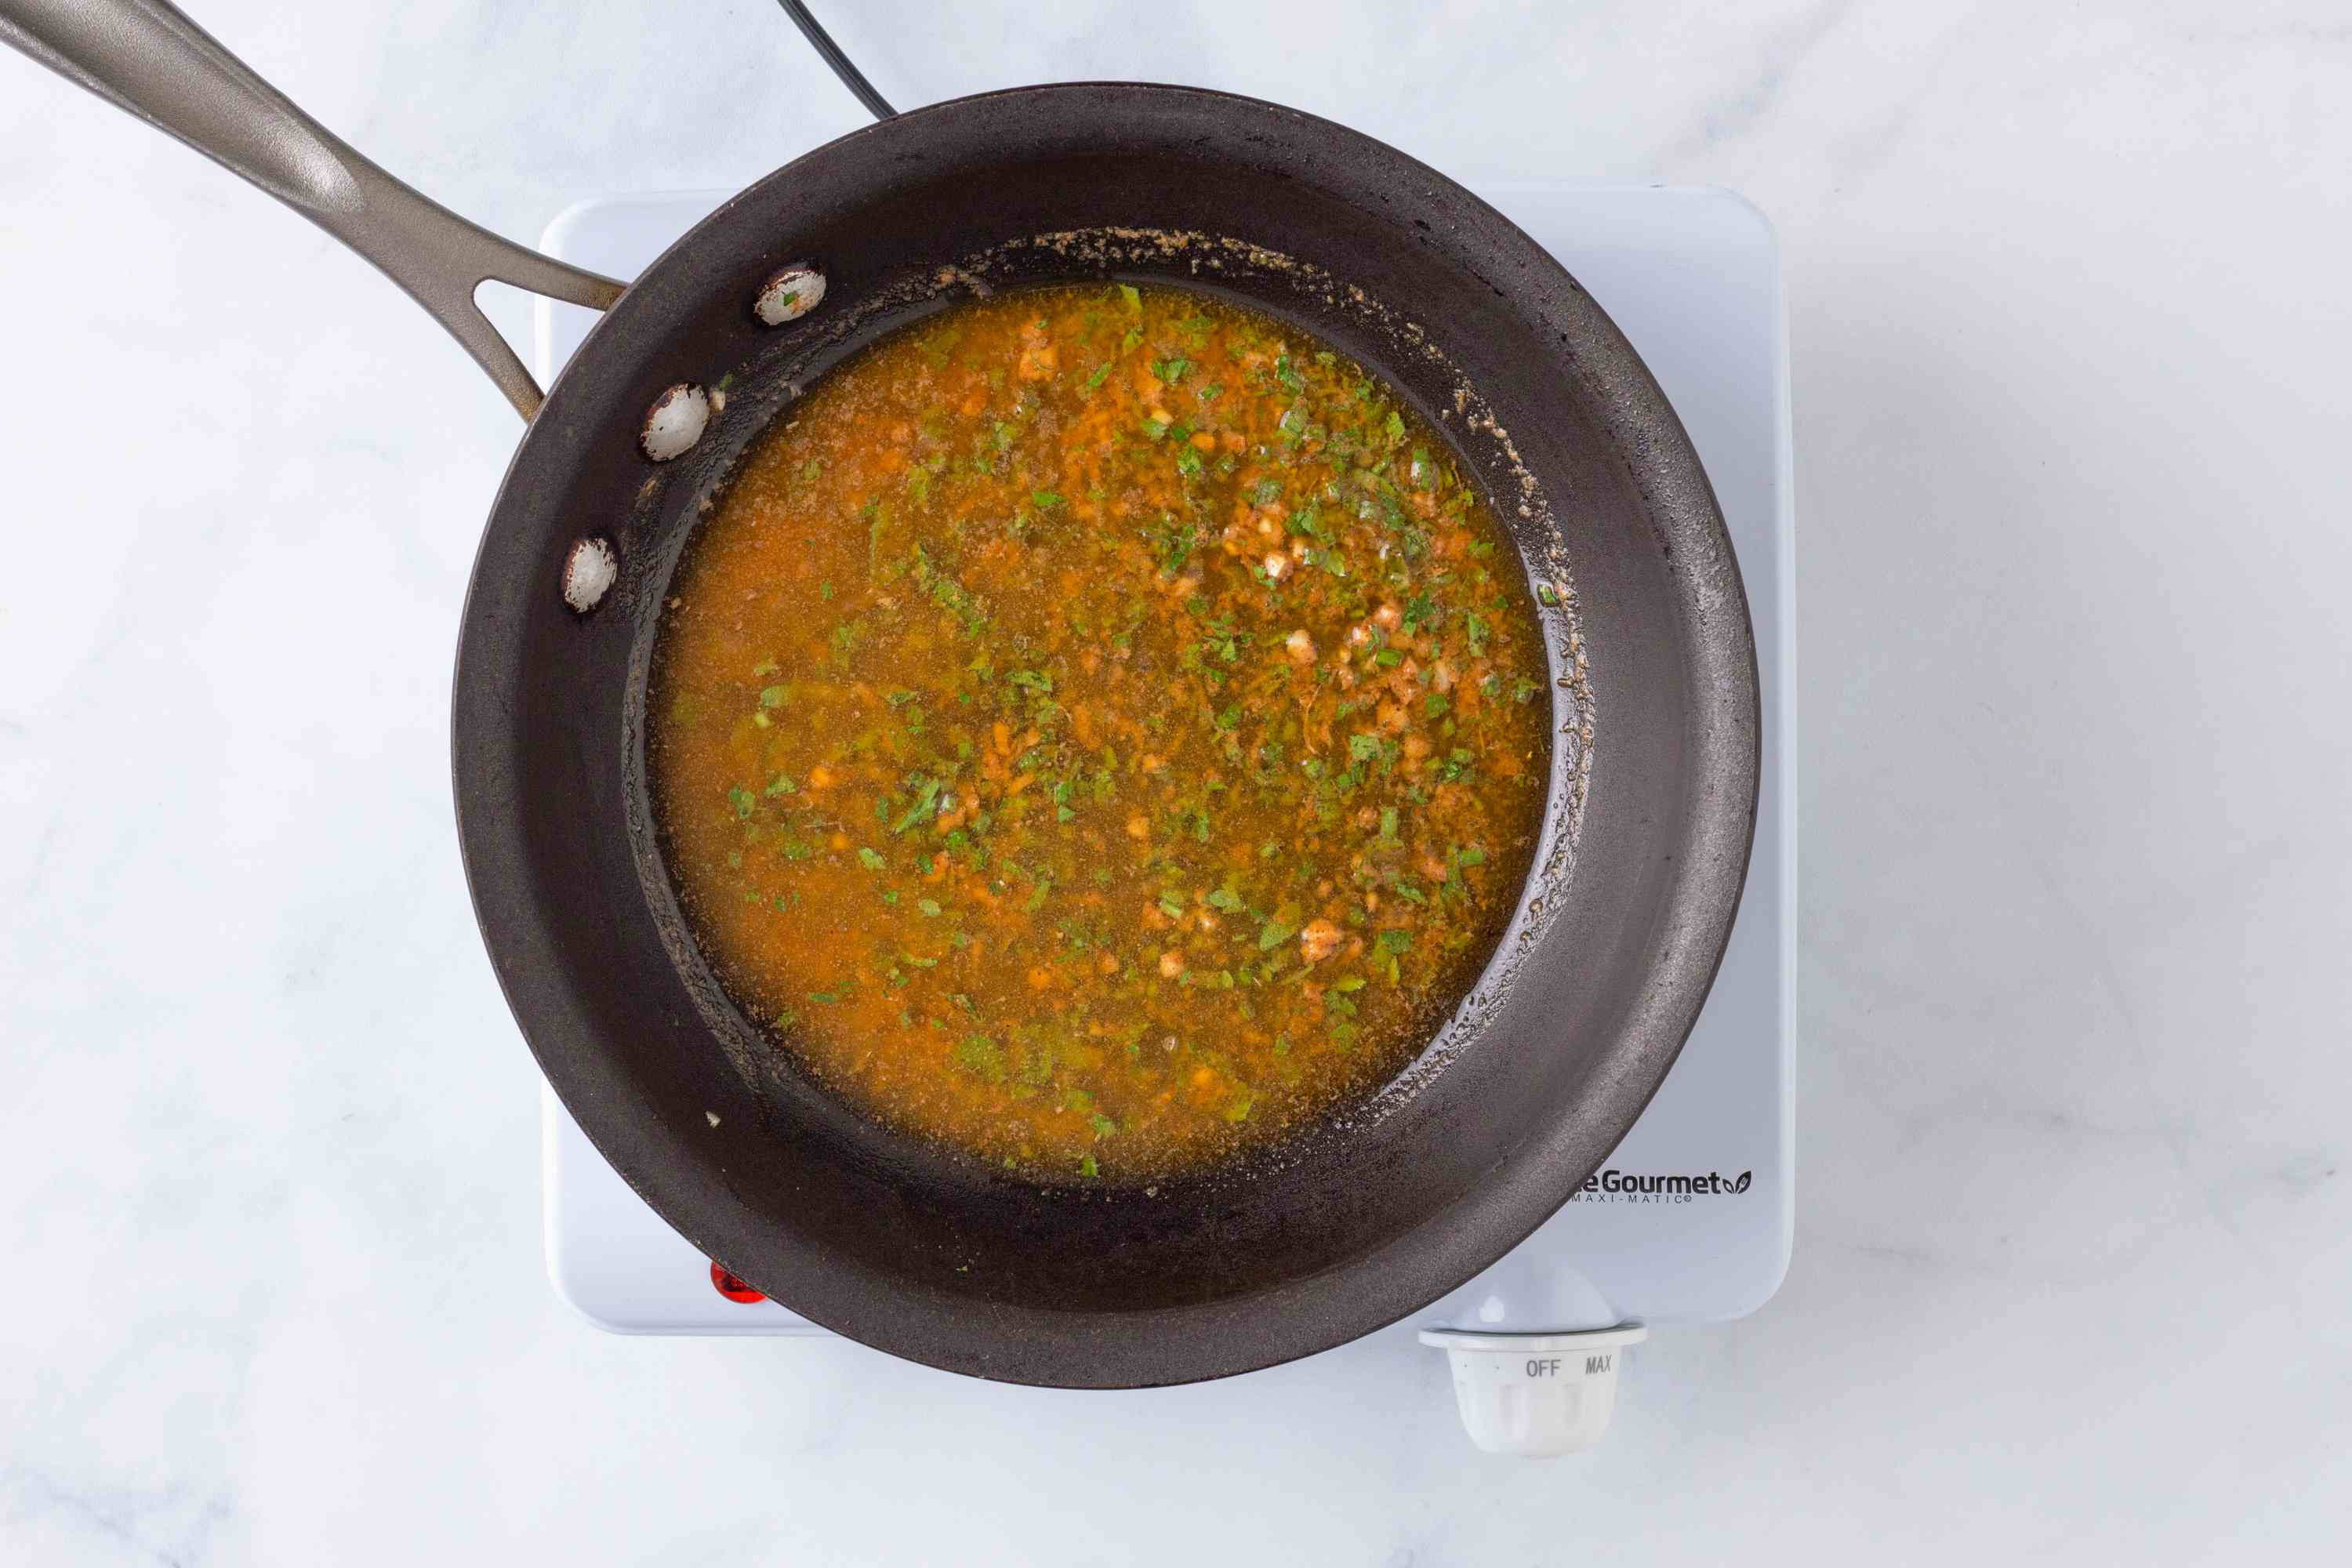 Butter, spices, and herbs melting in a skillet